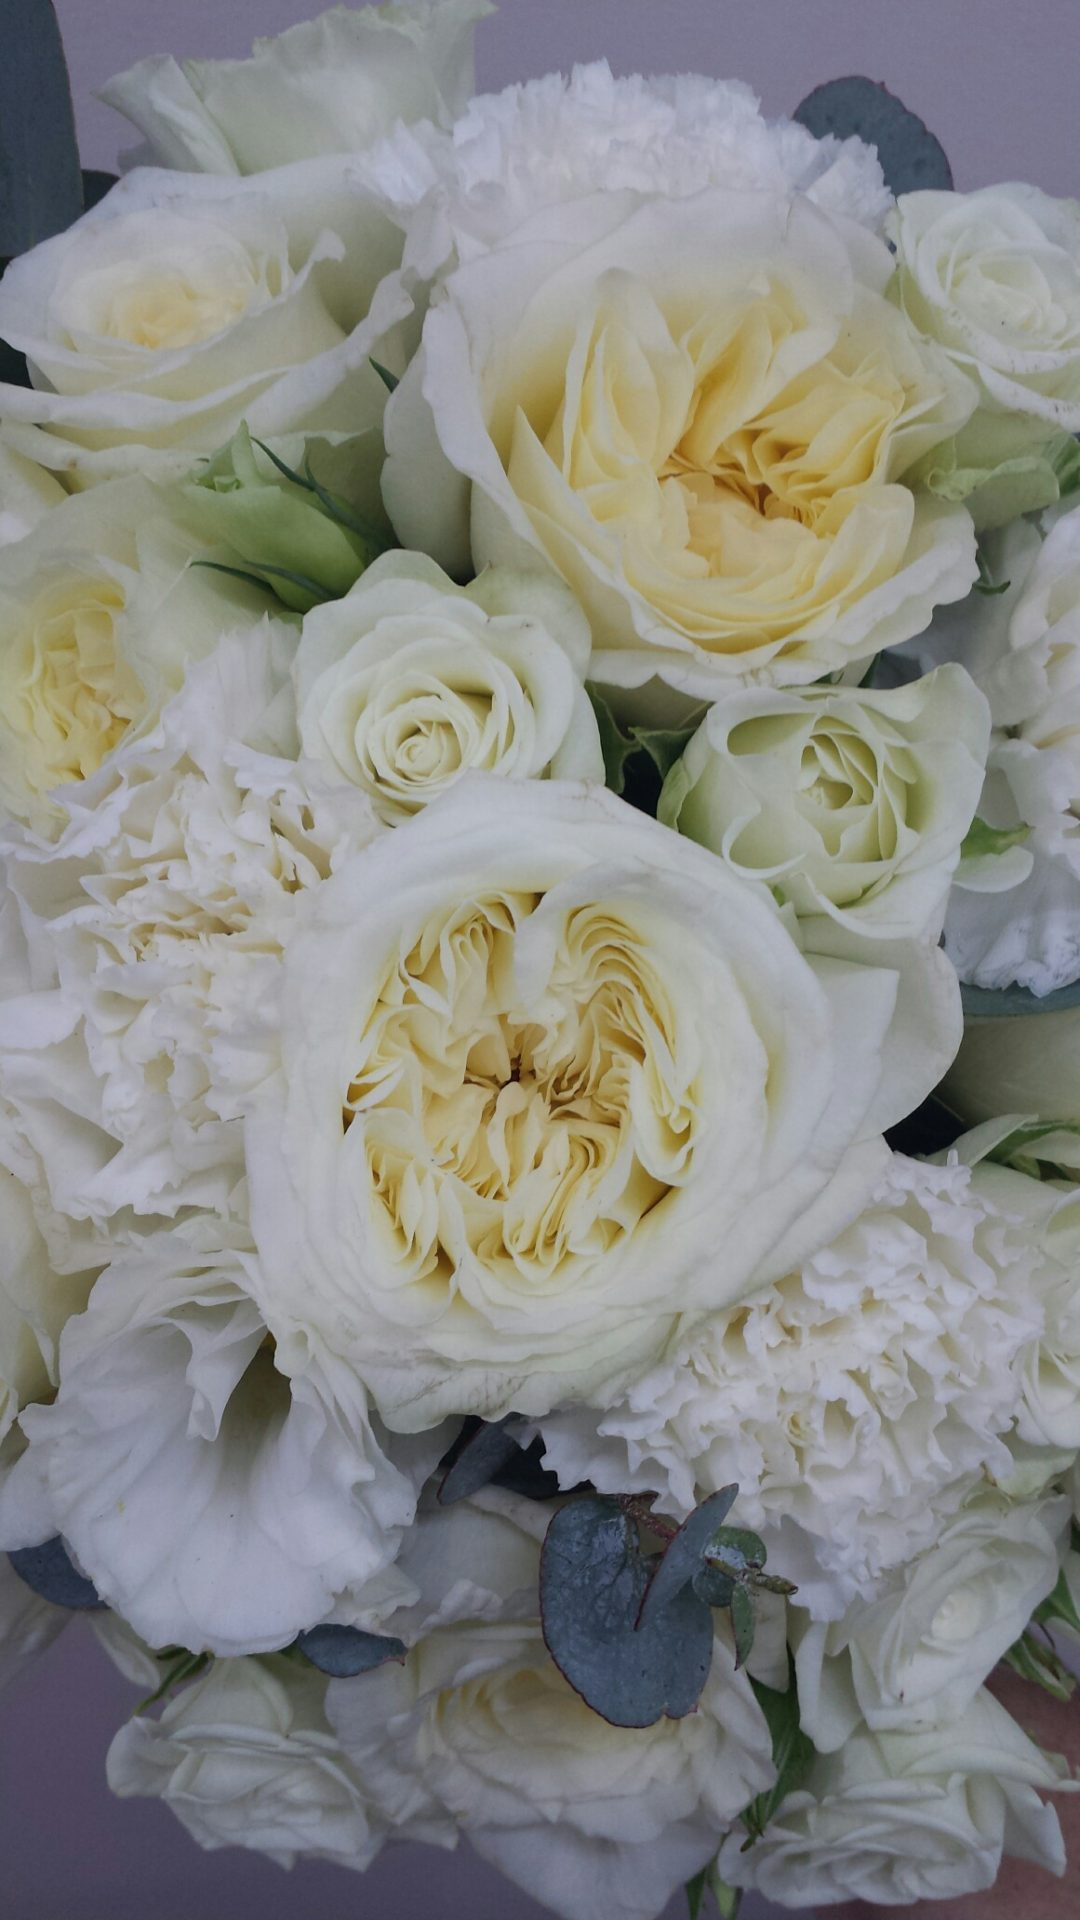 All white David Austin and garden roses, spray roses, Lisianthus and carnation bouquet